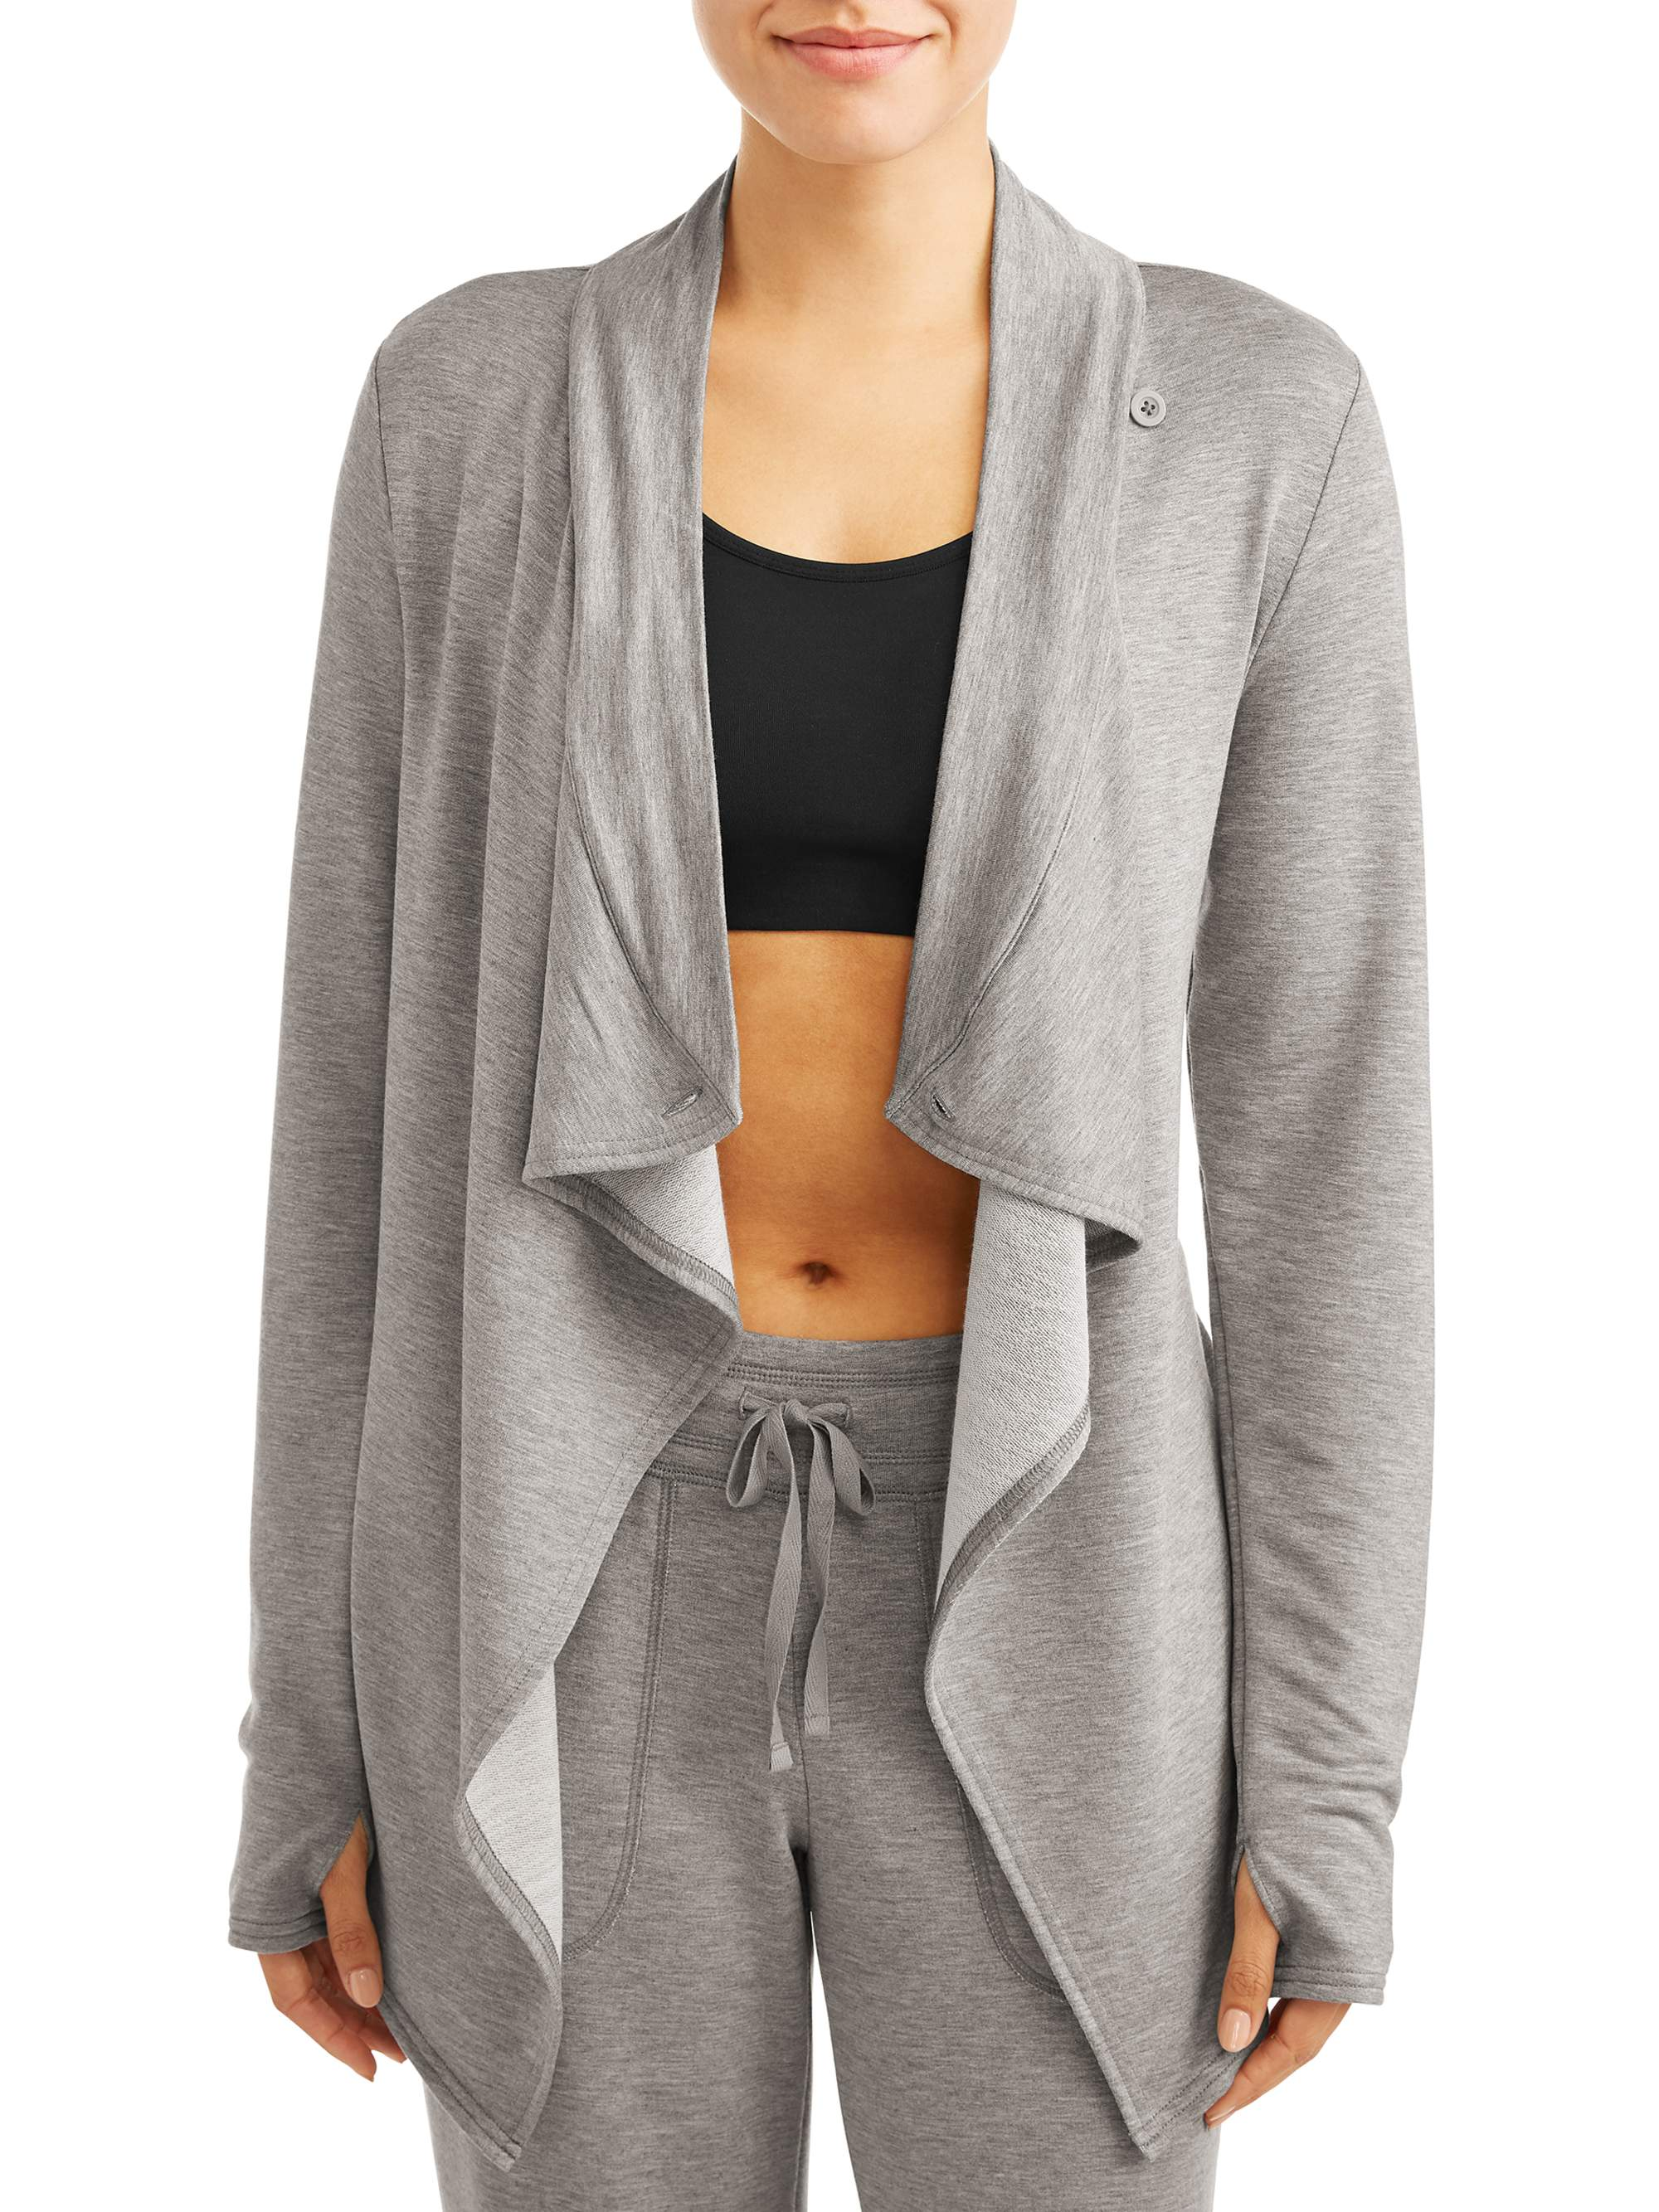 Athletic Works Women?s Knit Wrap Cardigan